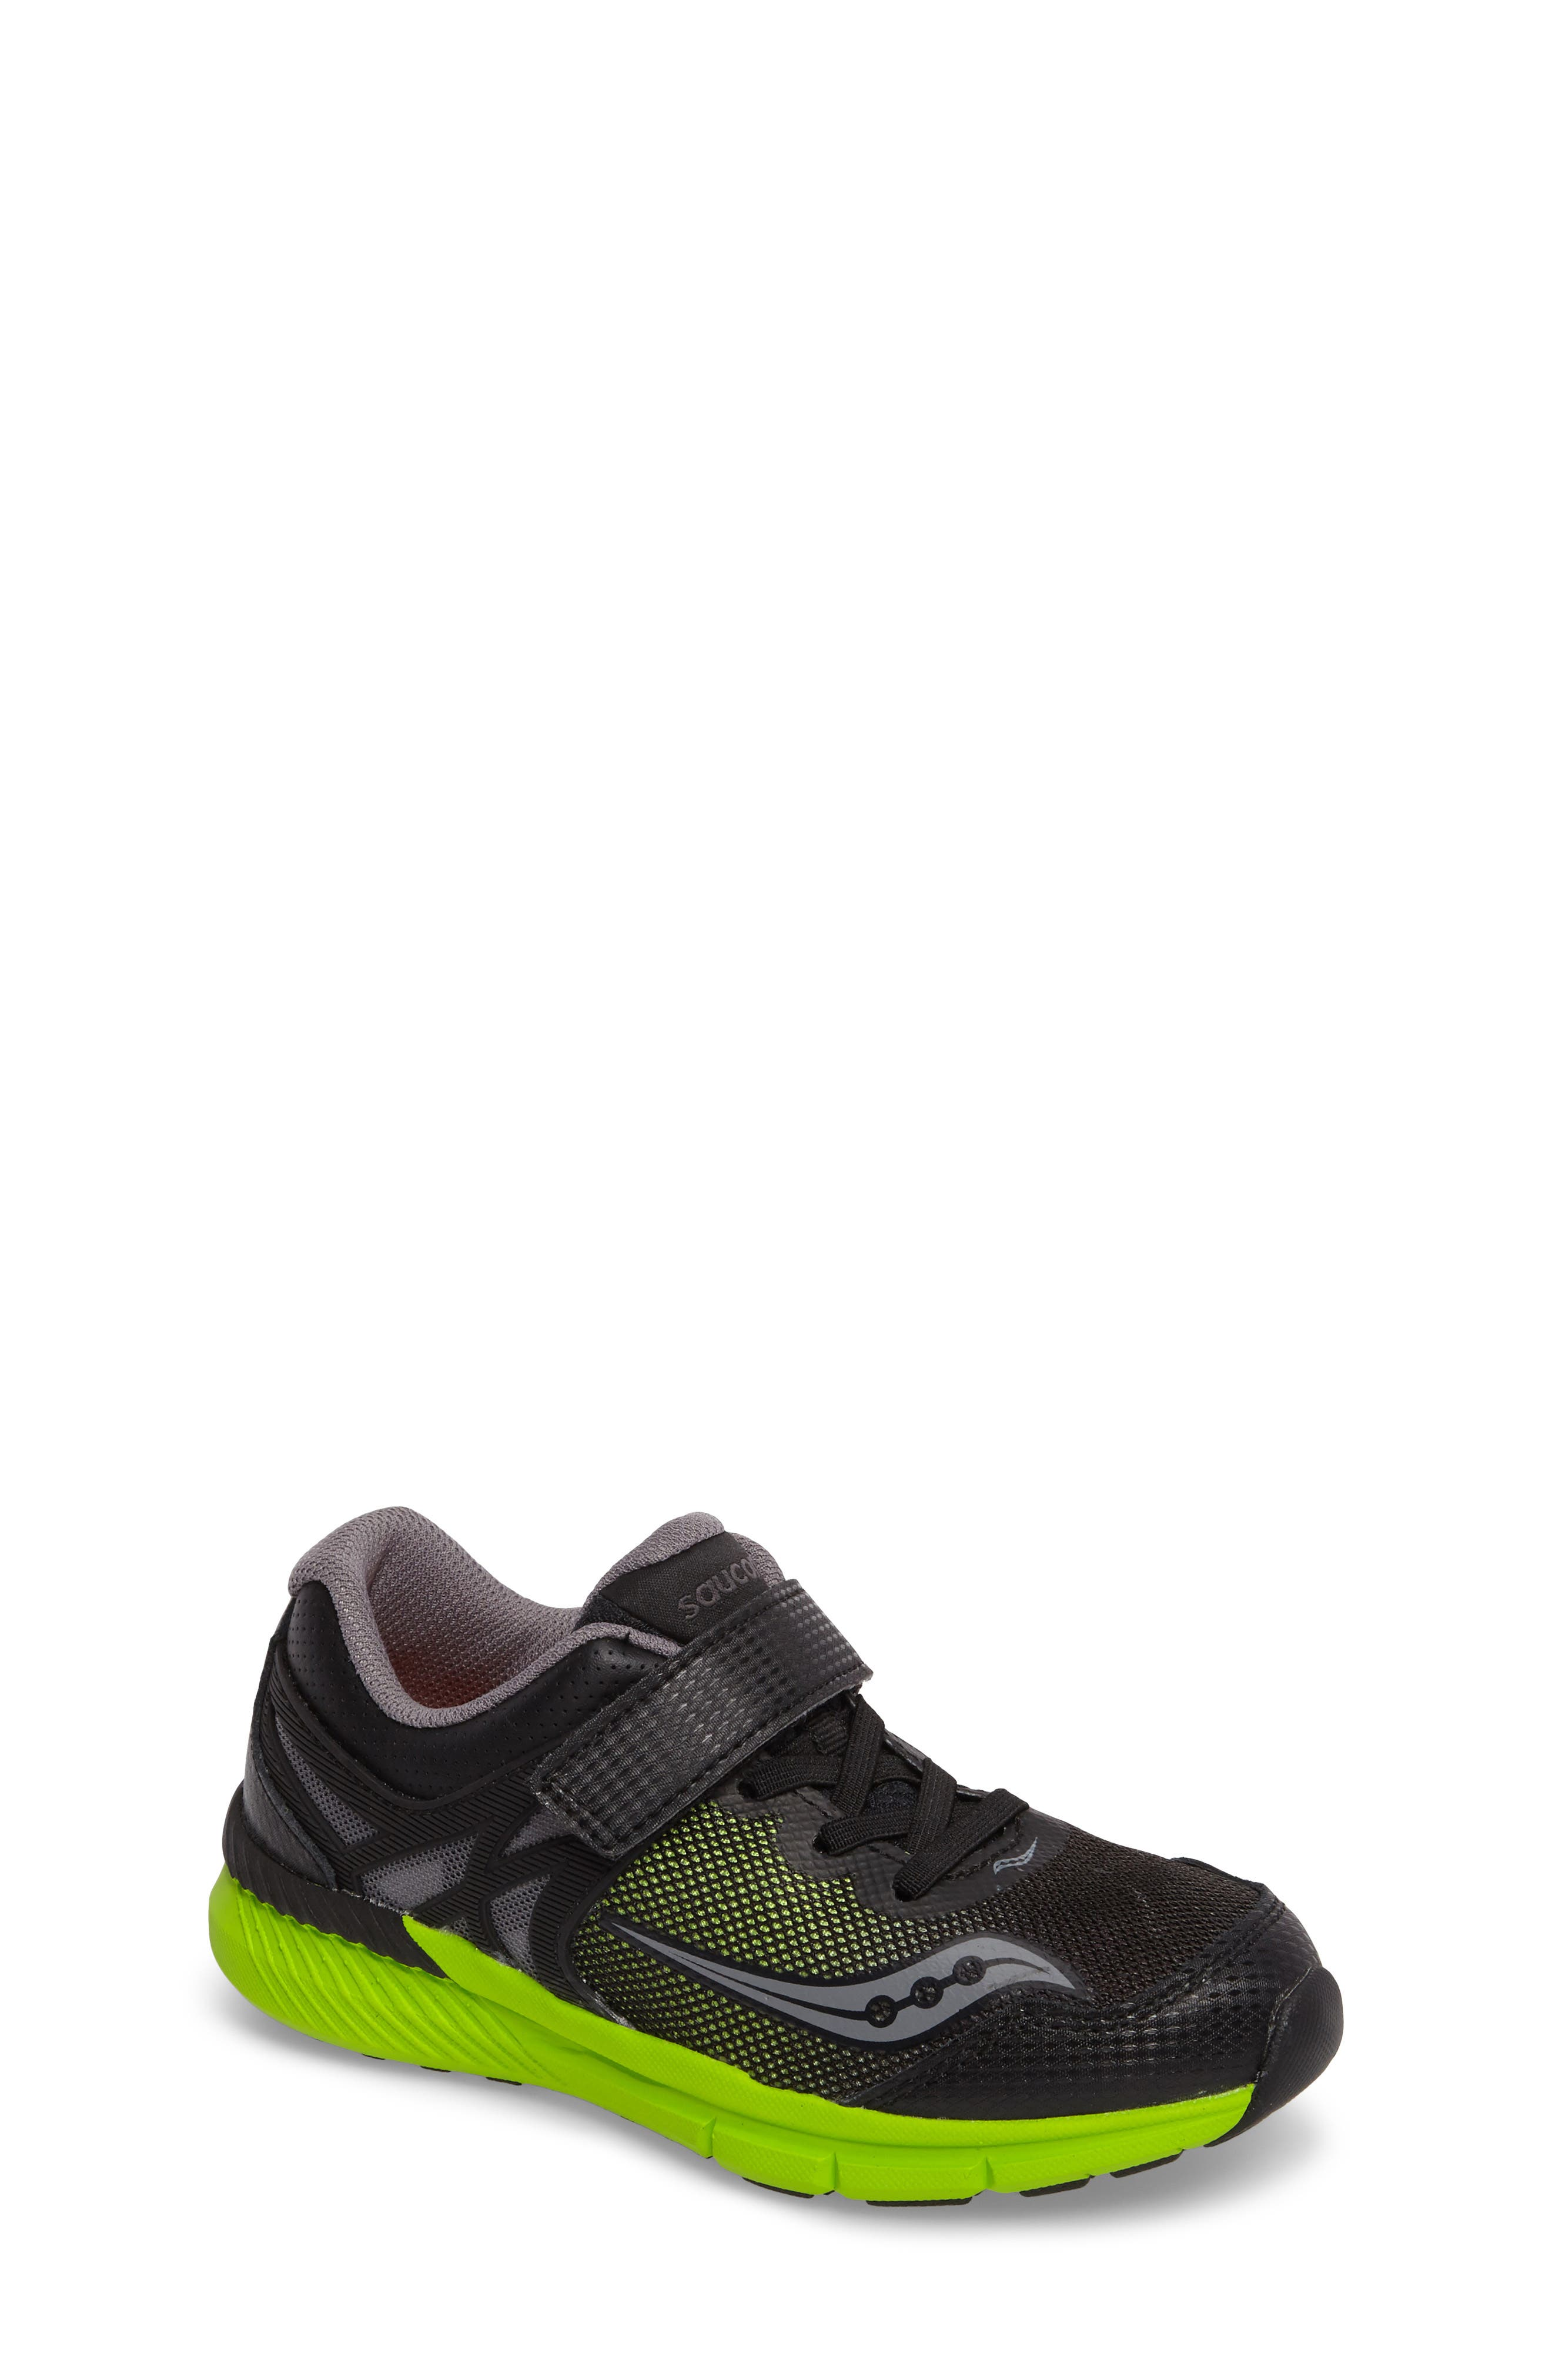 Velocity A/C Sneaker,                         Main,                         color, Black/ Green